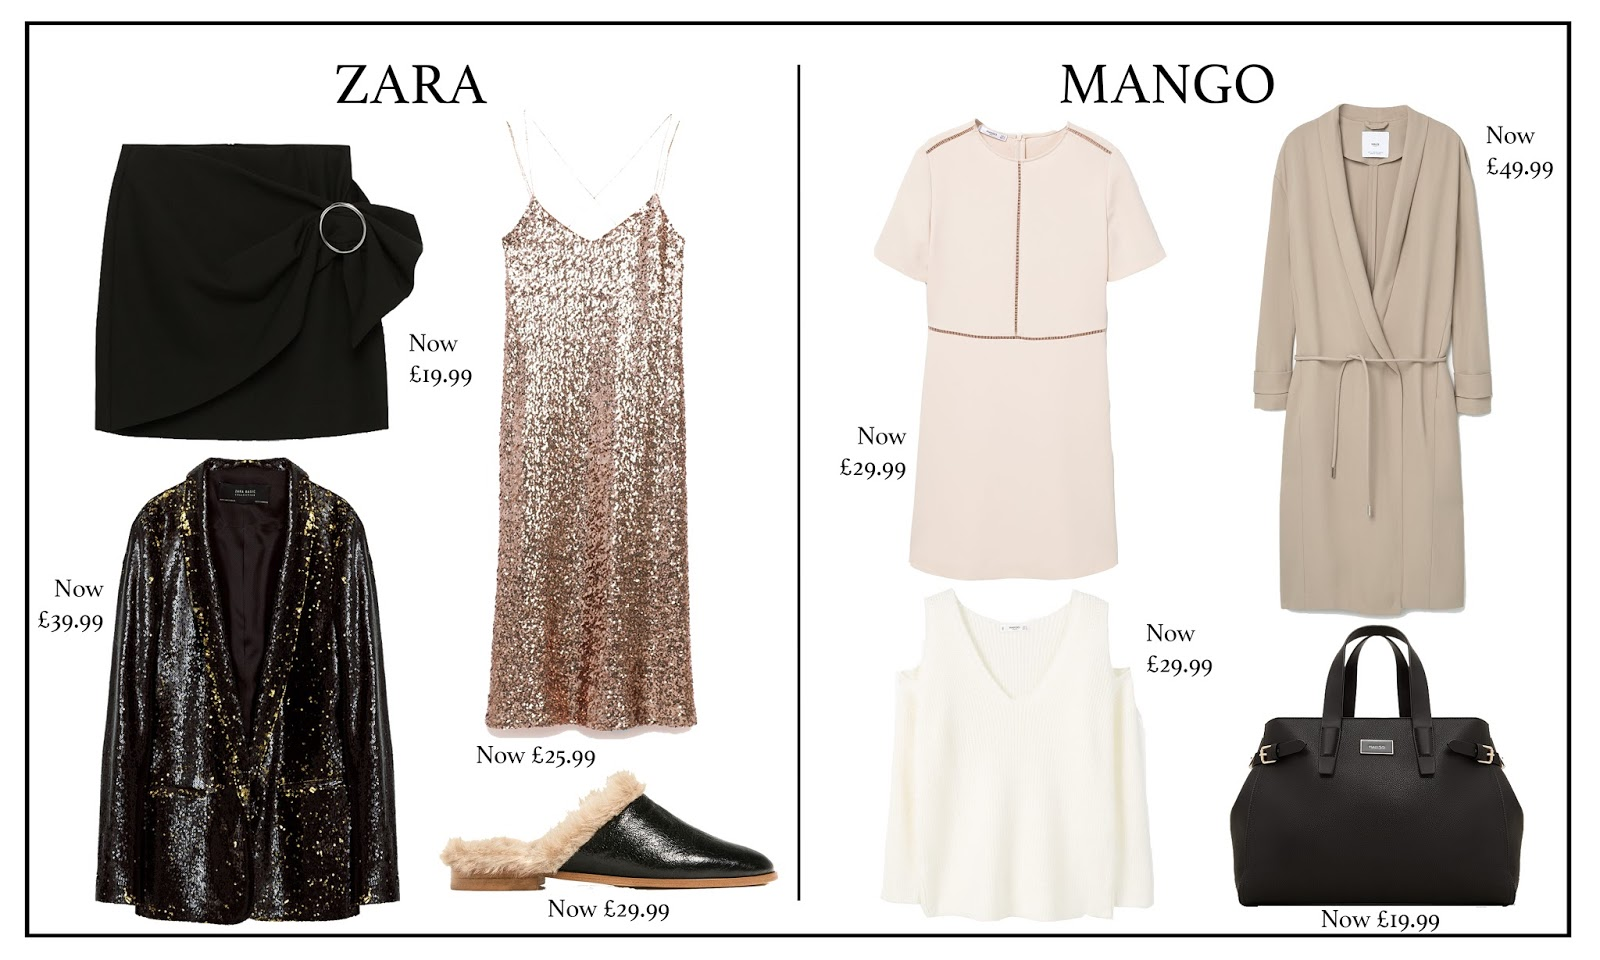 zara, mango, topshop, river island, french connection, warehouse, fashion, fashion blog, sales, new years